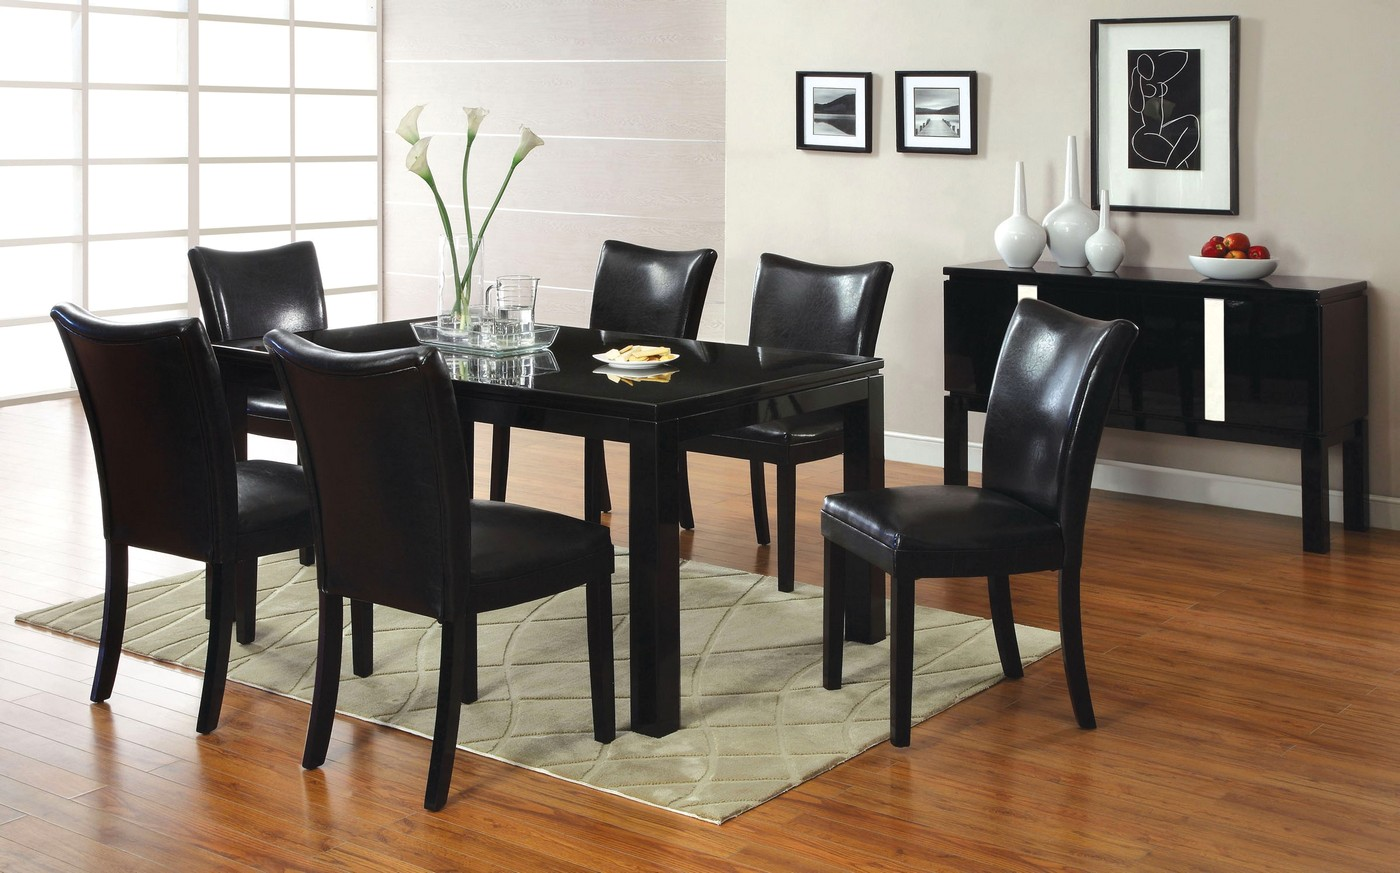 Lamia I Contemporary Black Casual Dining Set with ...